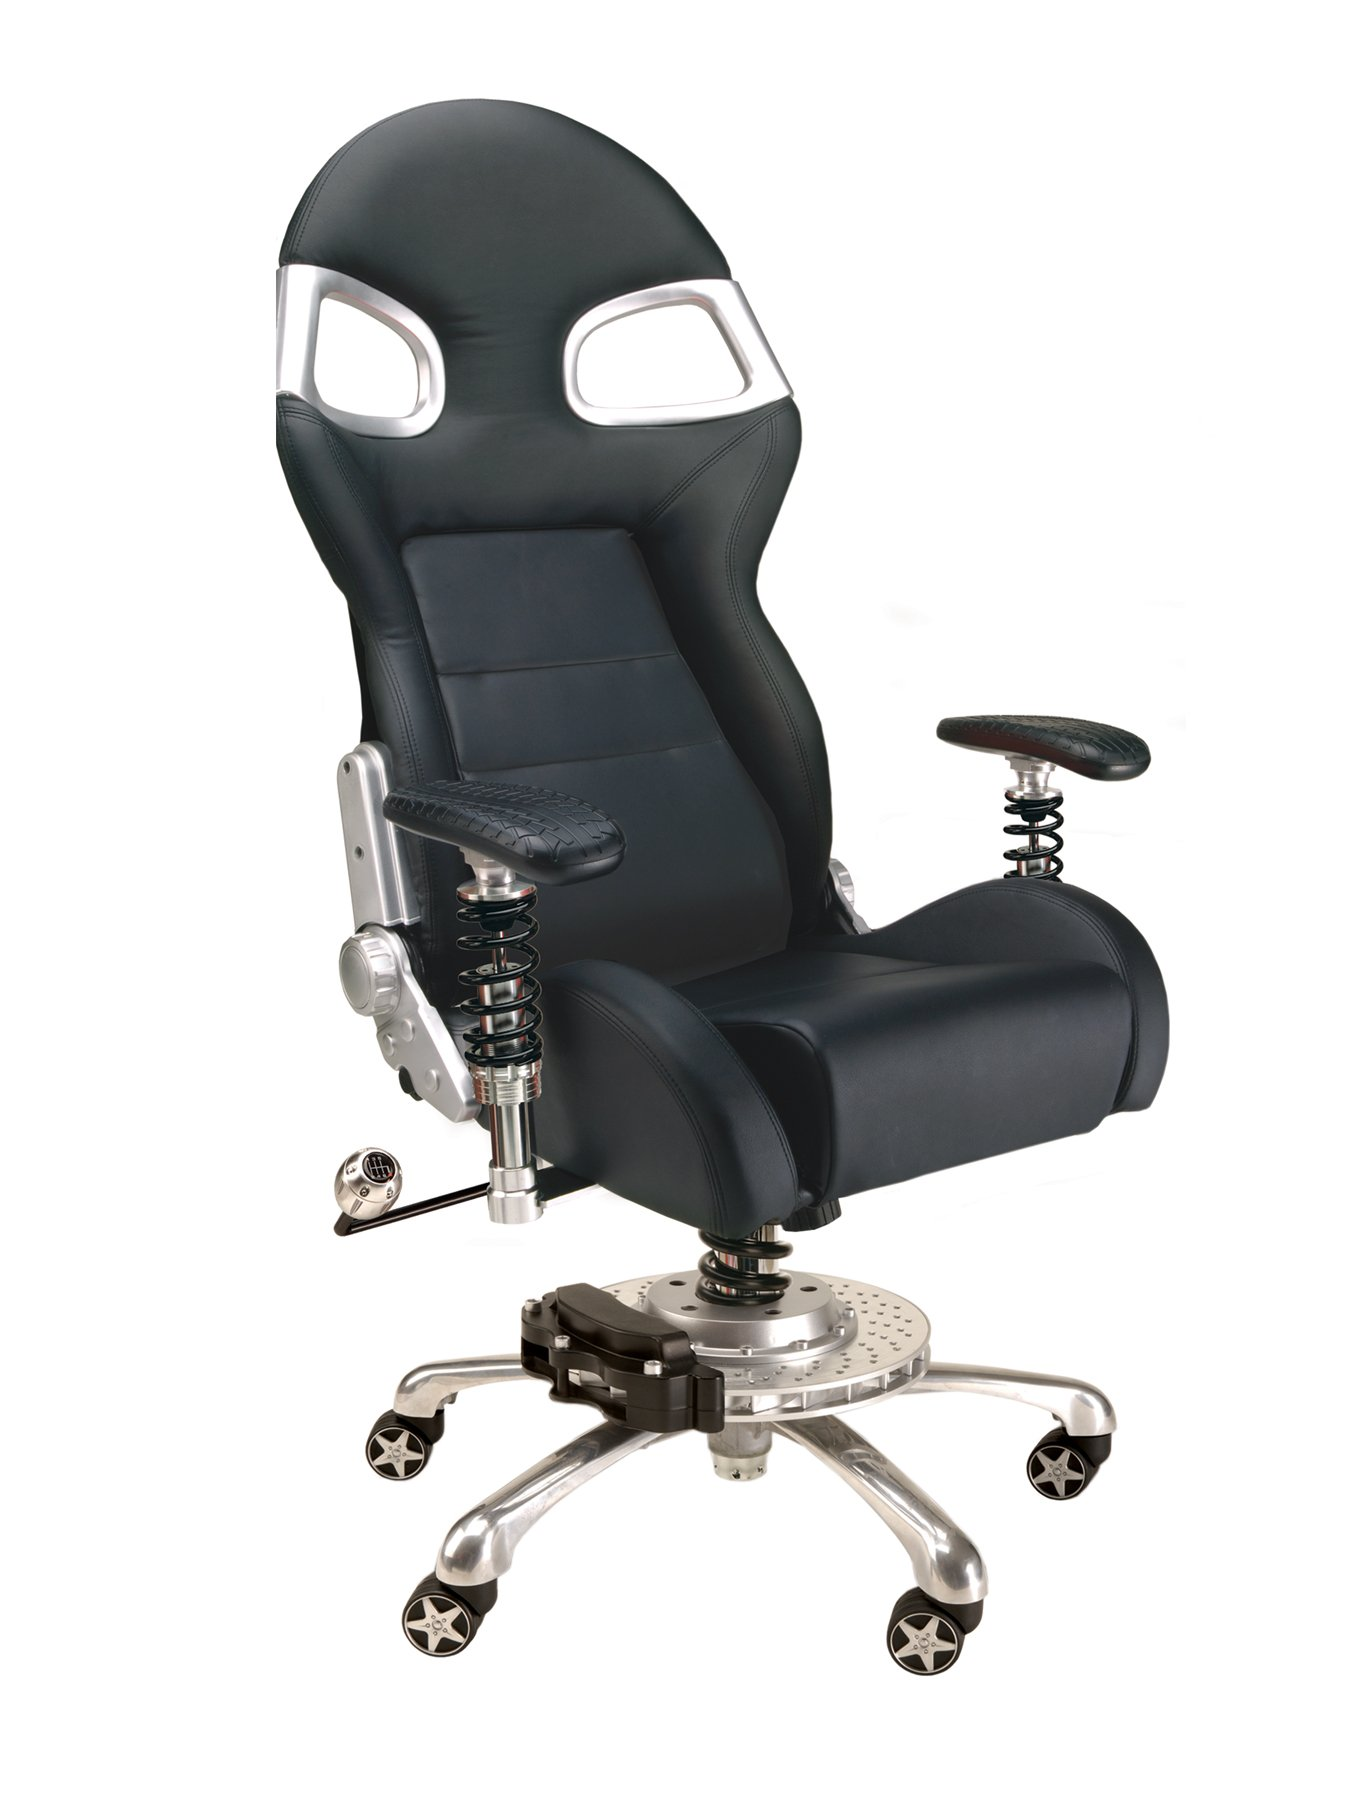 PitStop Furniture F08000B LXE Office Chair, Black by Pitstop Furniture